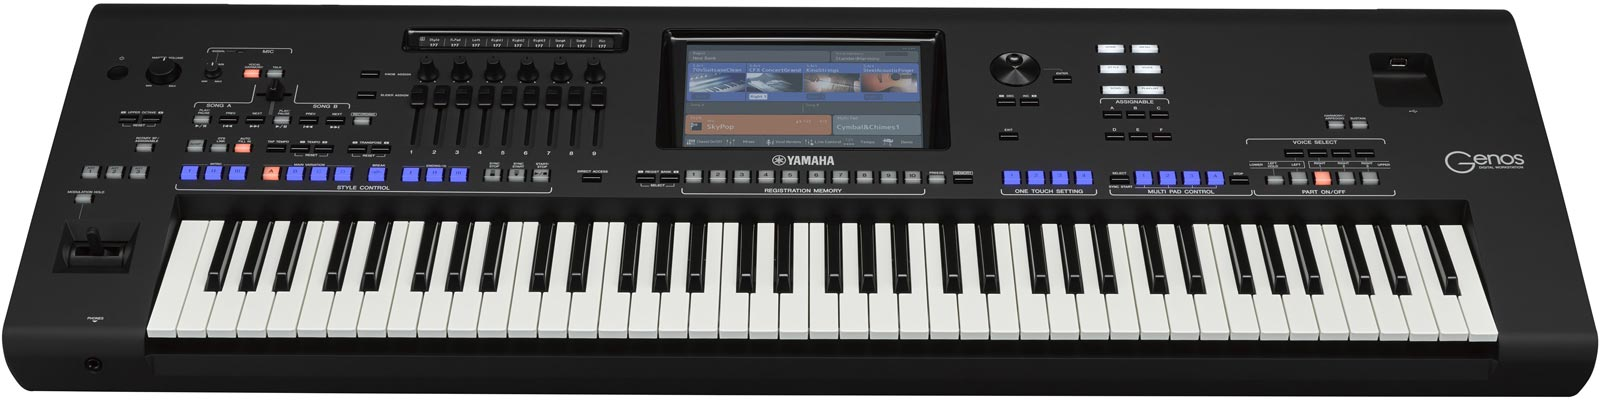 YAMAHA - Genos Digital Workstation